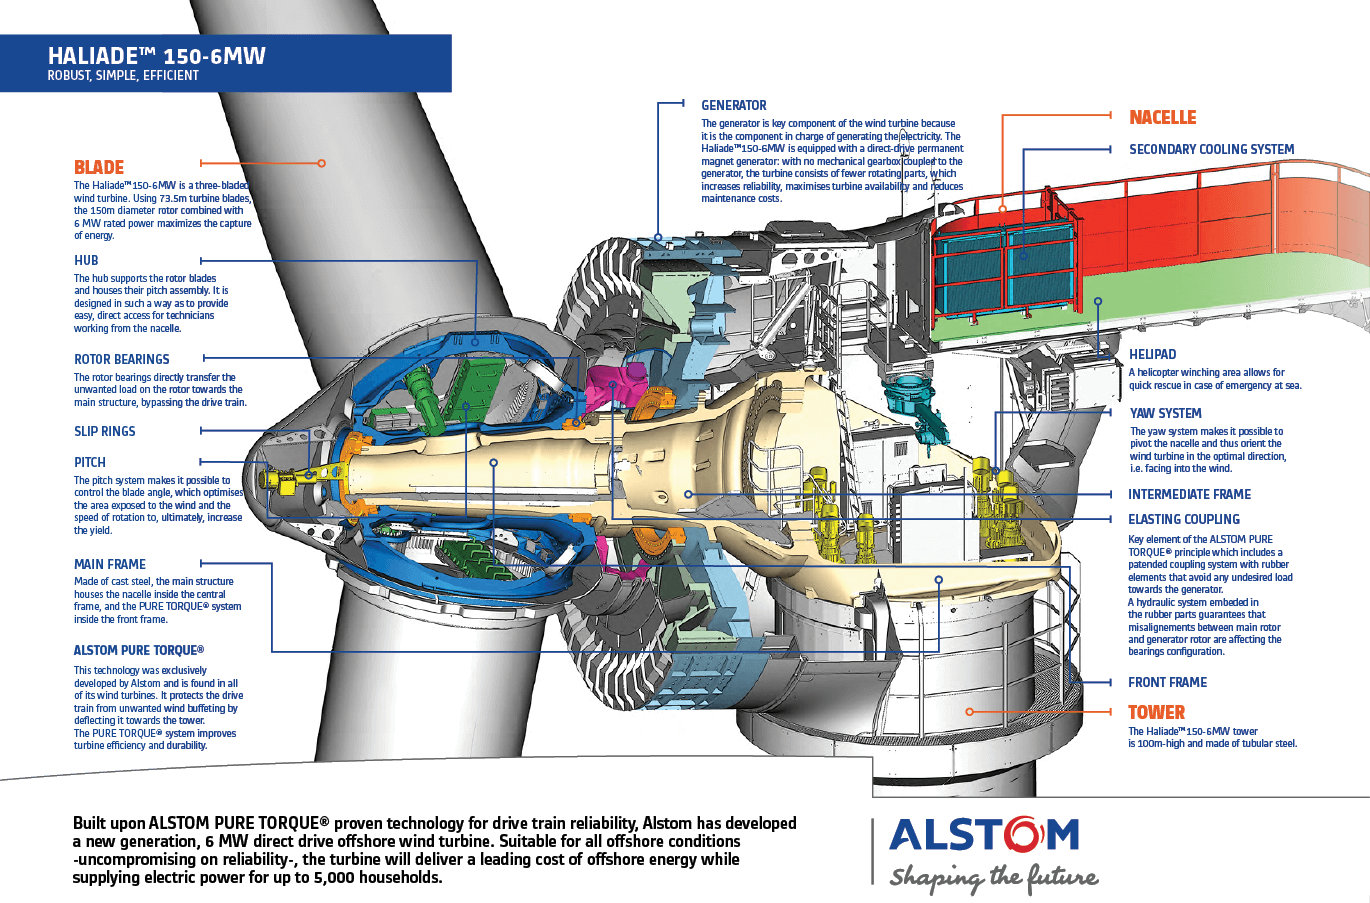 Alstom Haliade 150 6mw First Utility Scale Wind Turbine To Work In Diagram Also Power Generator Diagrams On Georges Middle Son Paul